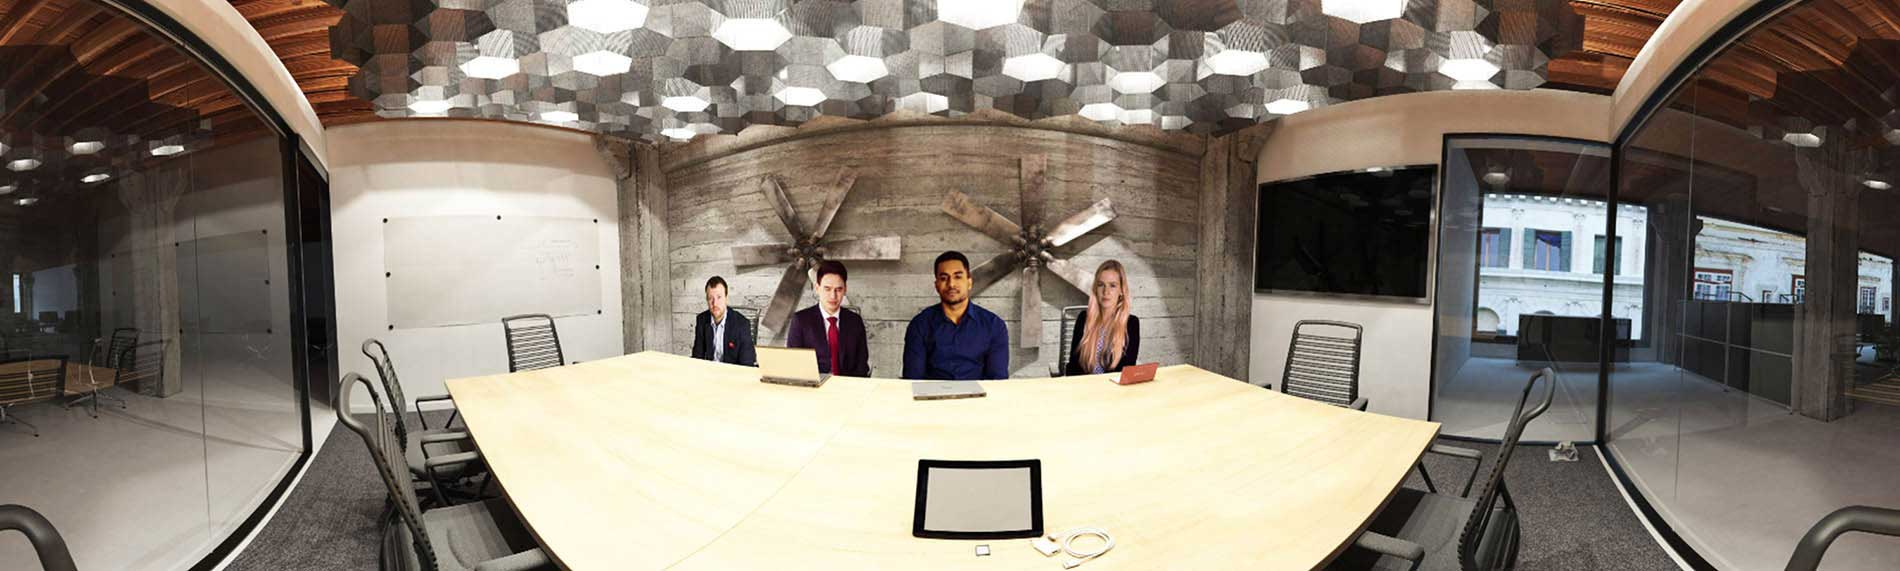 Job interview room in virtual reality (VR) for interview practice